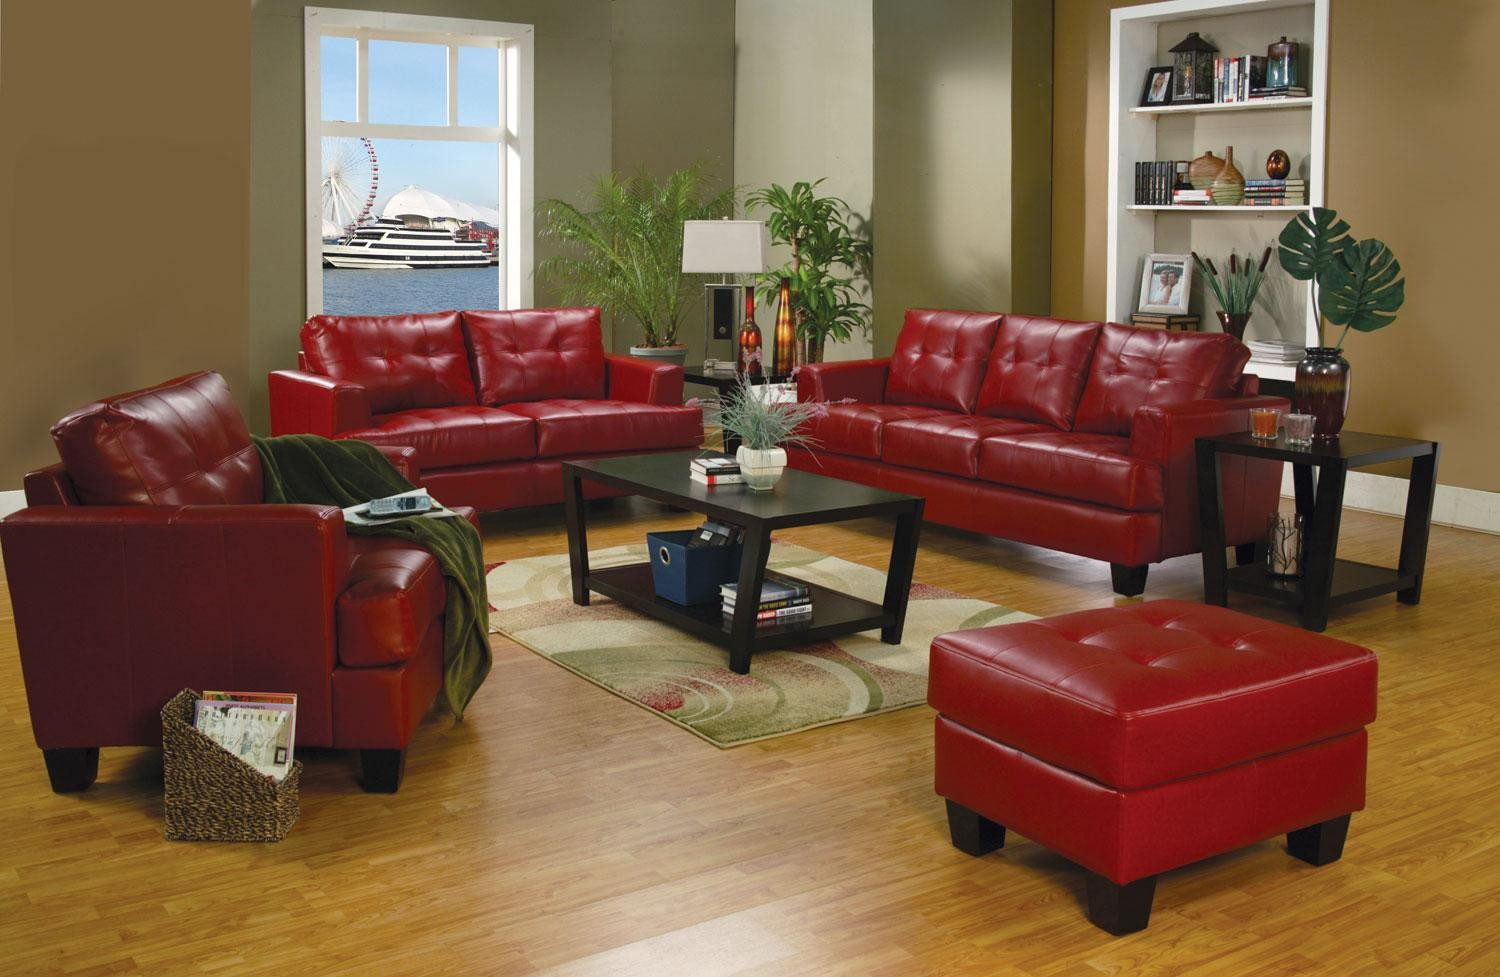 Samuel Red Leather Living Room Set from Coaster